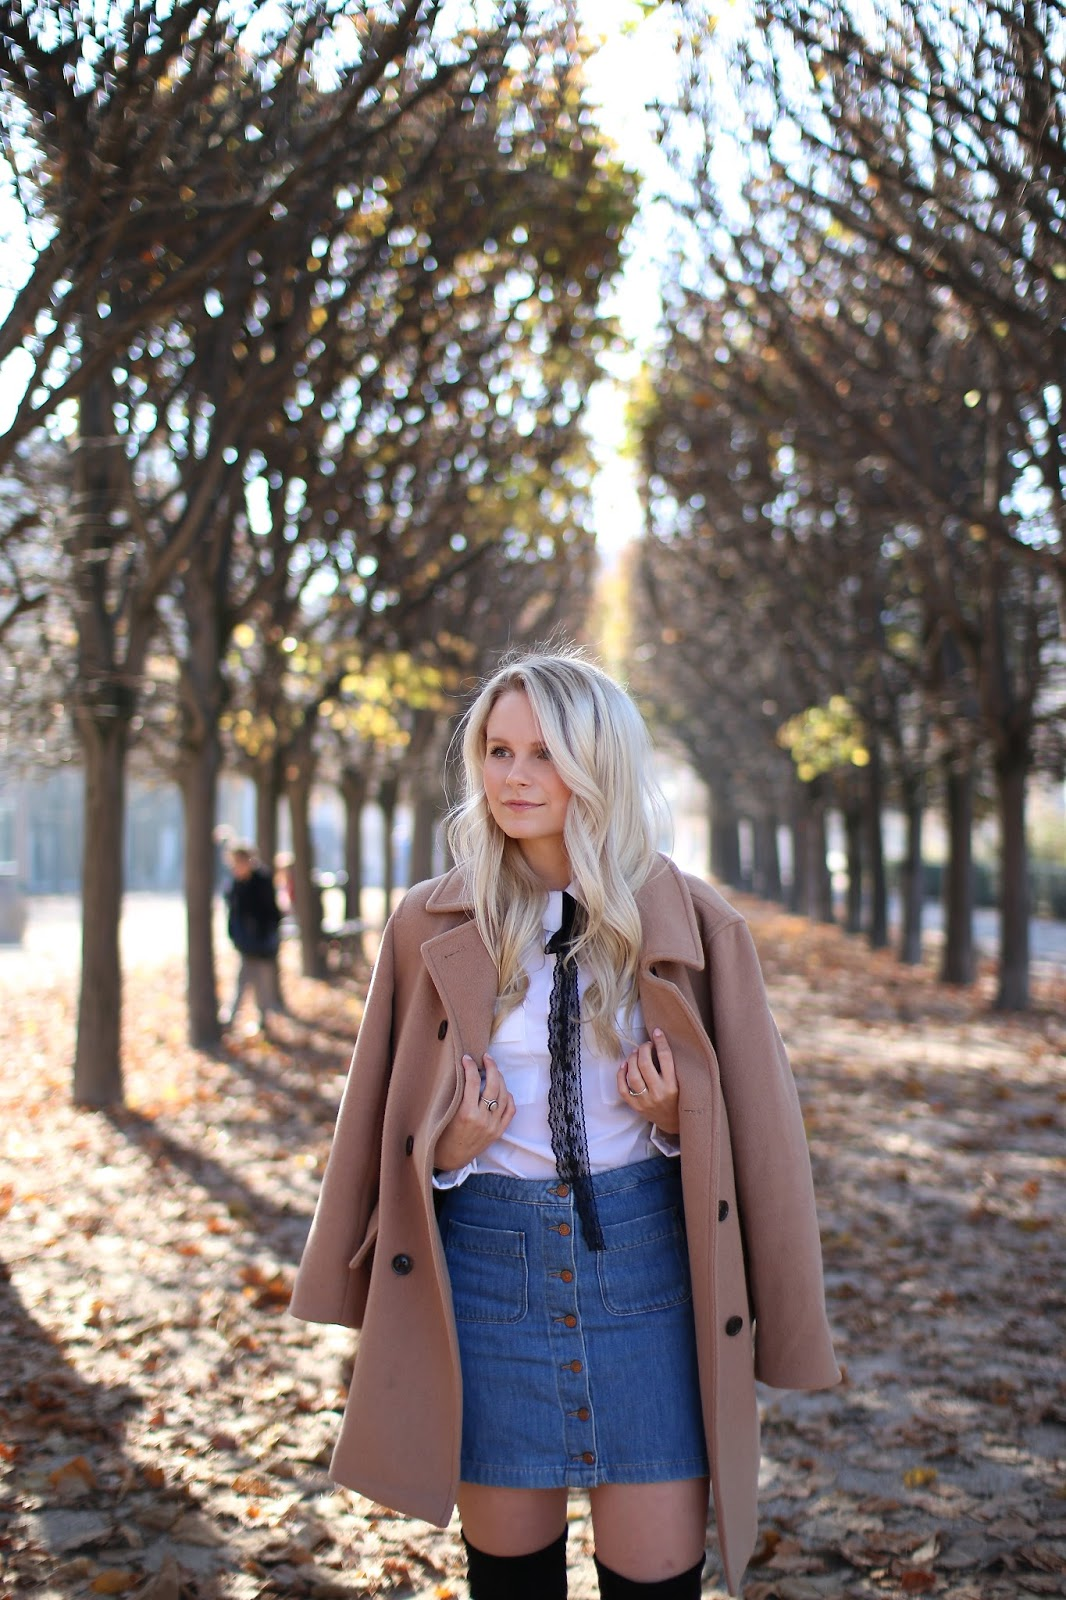 wandering paris on foot in the fall